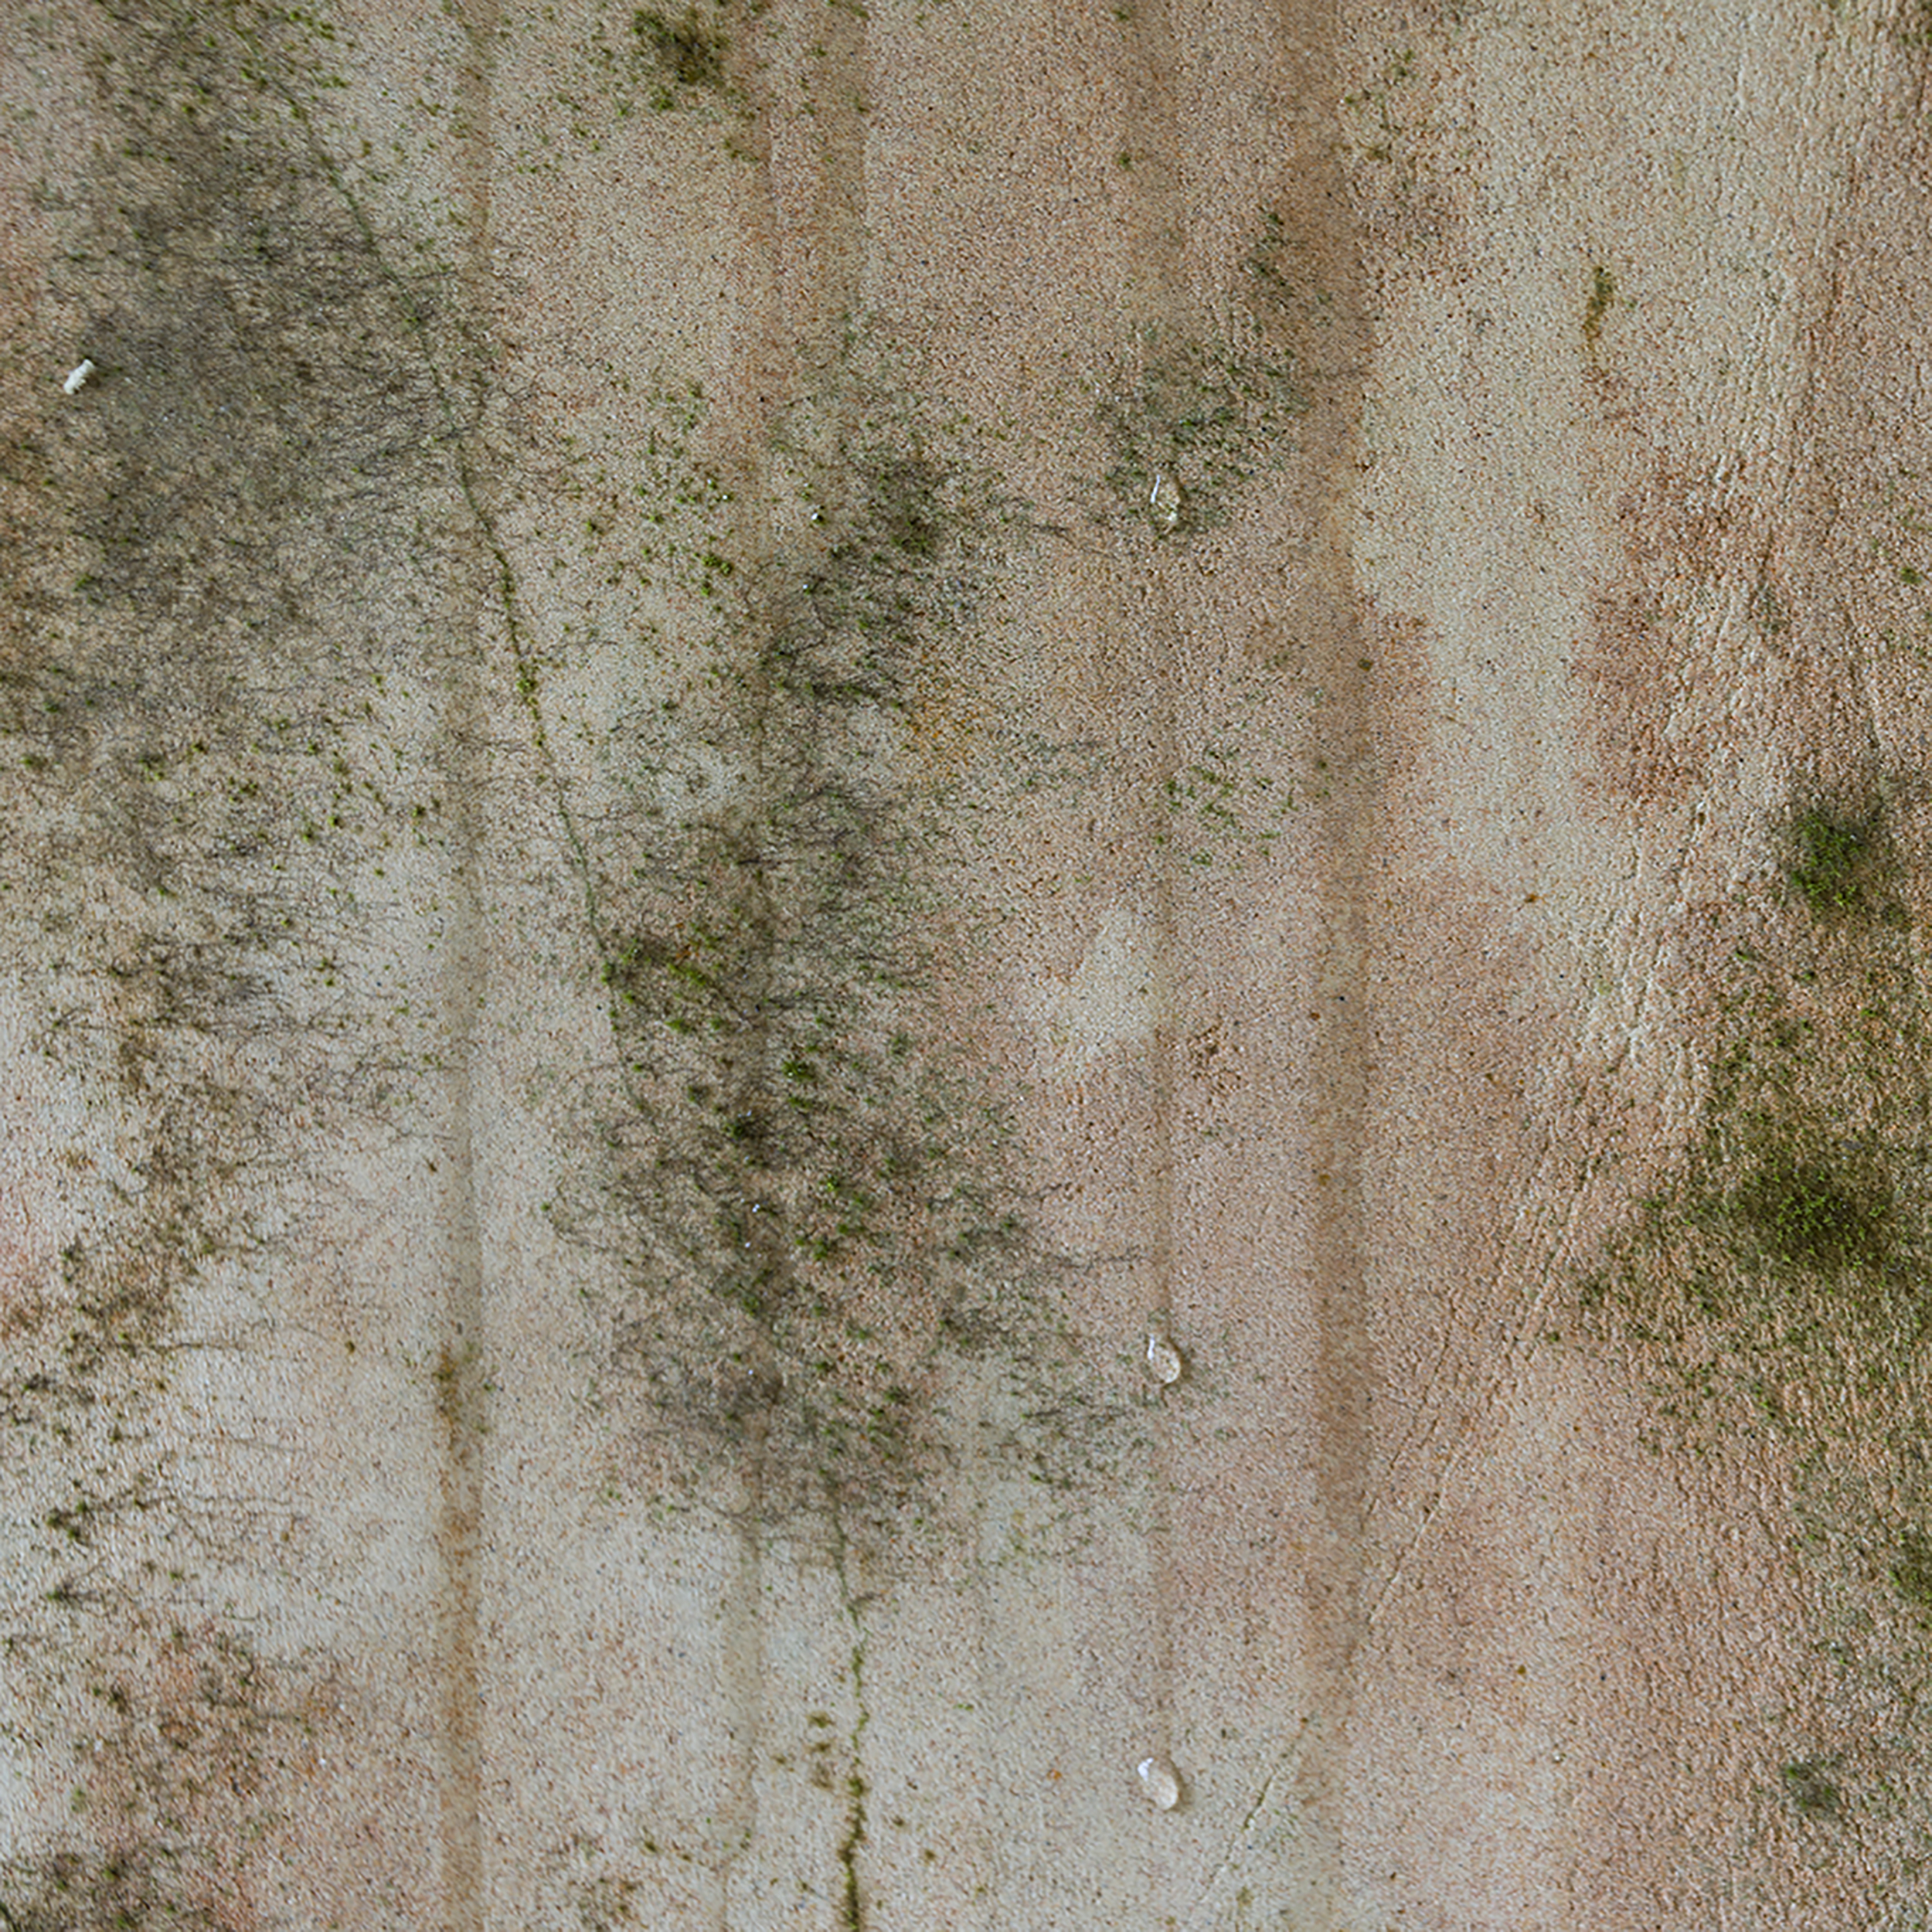 Trees in the Mould 5.jpg